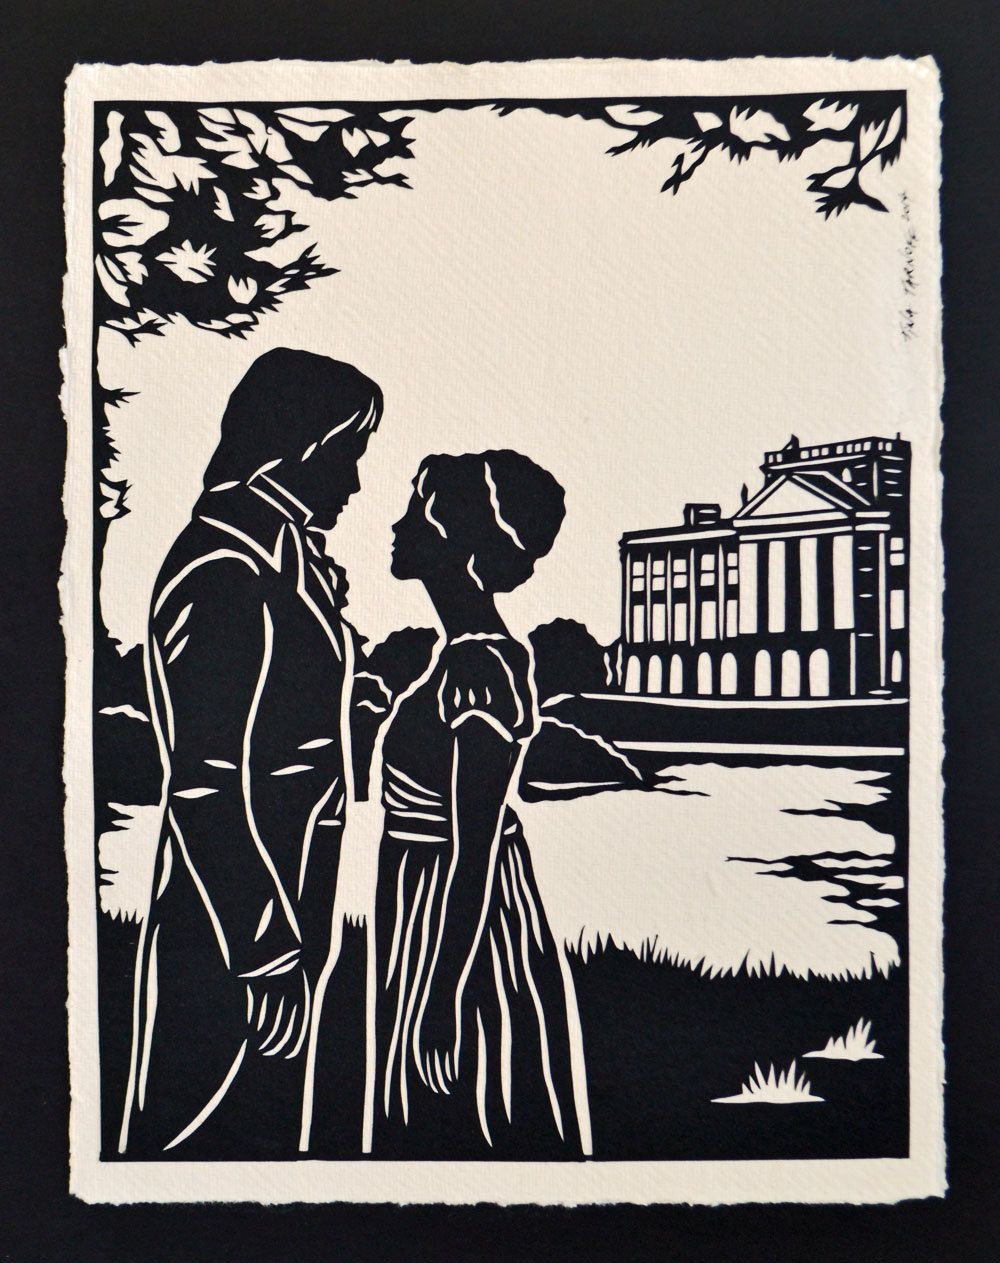 Pride and prejudice papercut elizabeth and darcy at pemberley sale 30 off coupon code sale30 pride and prejudice elizabeth and darcy at pemberley hand cut silhouette papercut by tinatarnoff on etsy fandeluxe Image collections